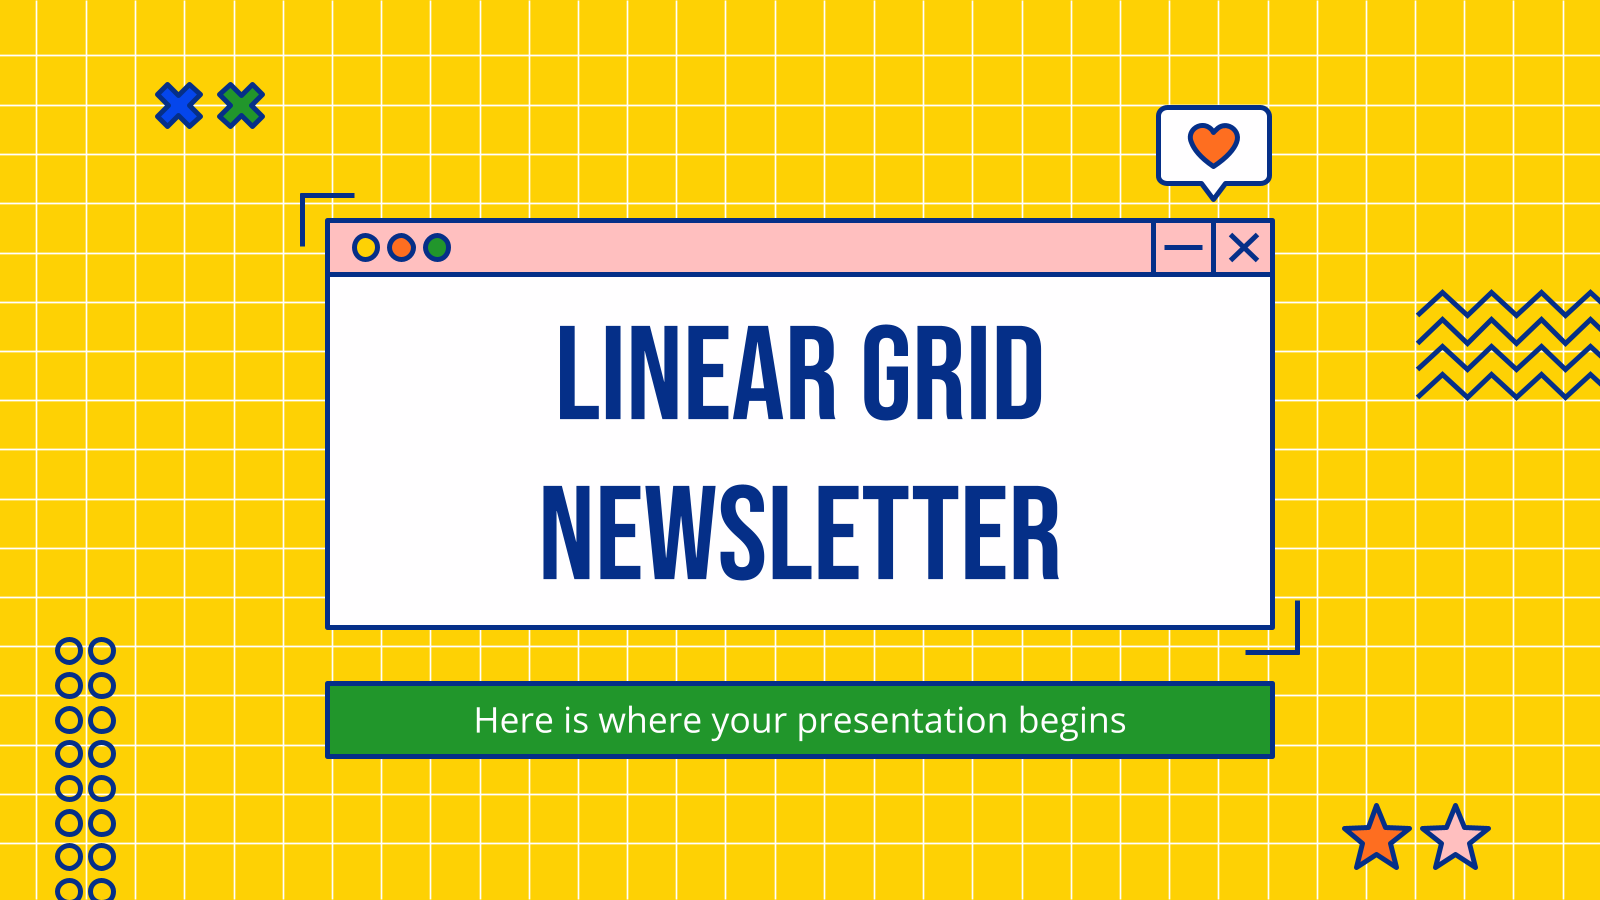 Linear Grid Newsletter presentation template